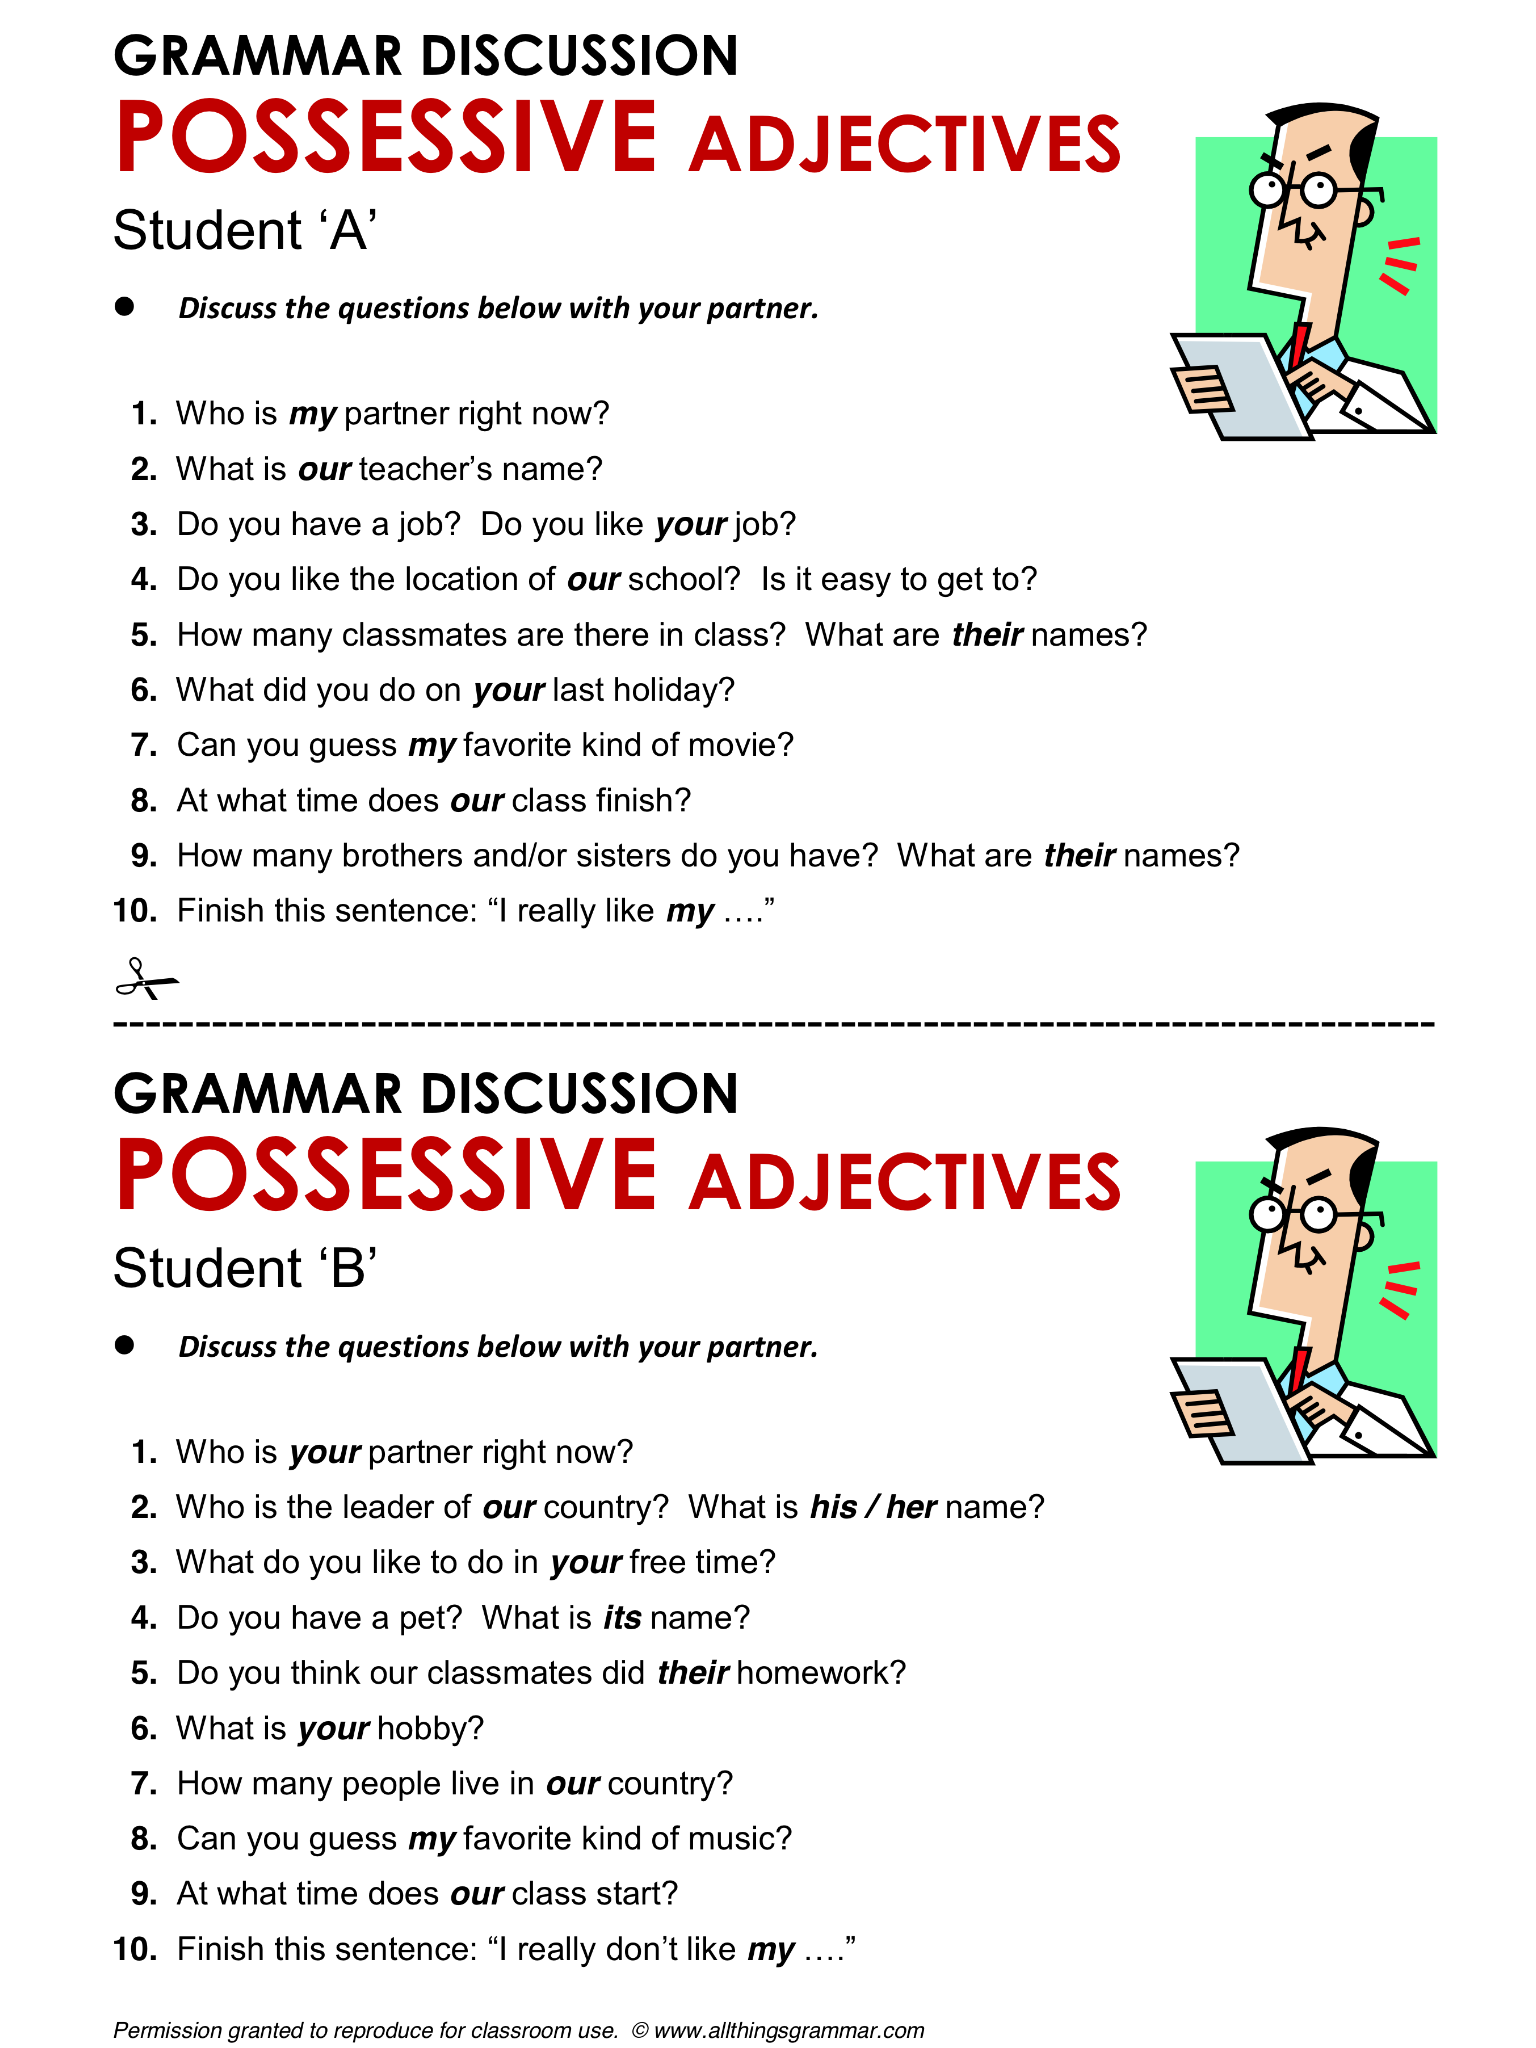 English Grammar Possessive Adjectives Lthingsgrammar Possessive Adjectives